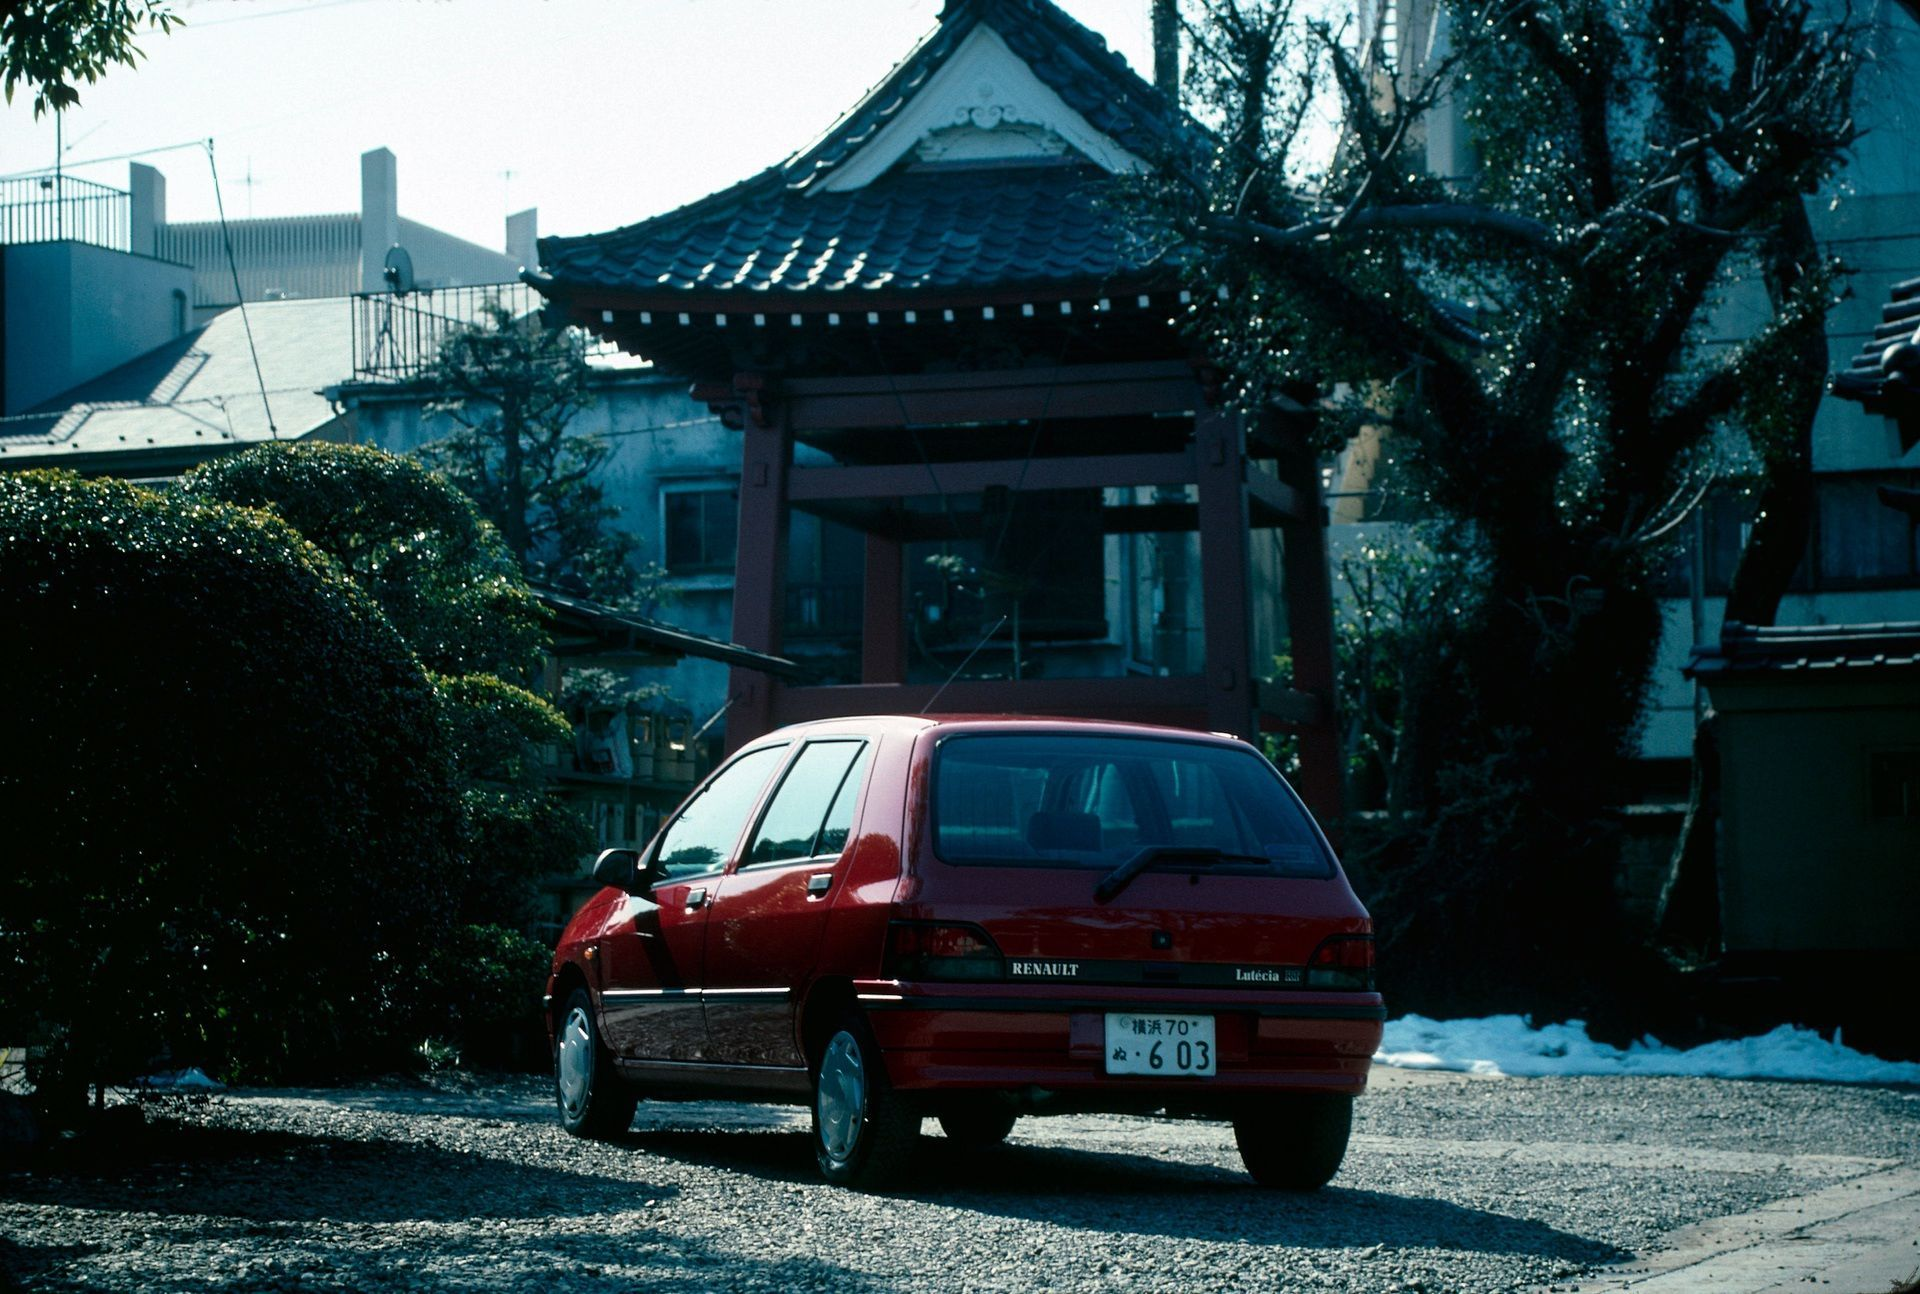 2020-30-years-of-Renault-CLIO-Renault-CLIO-I-1990-1999-28